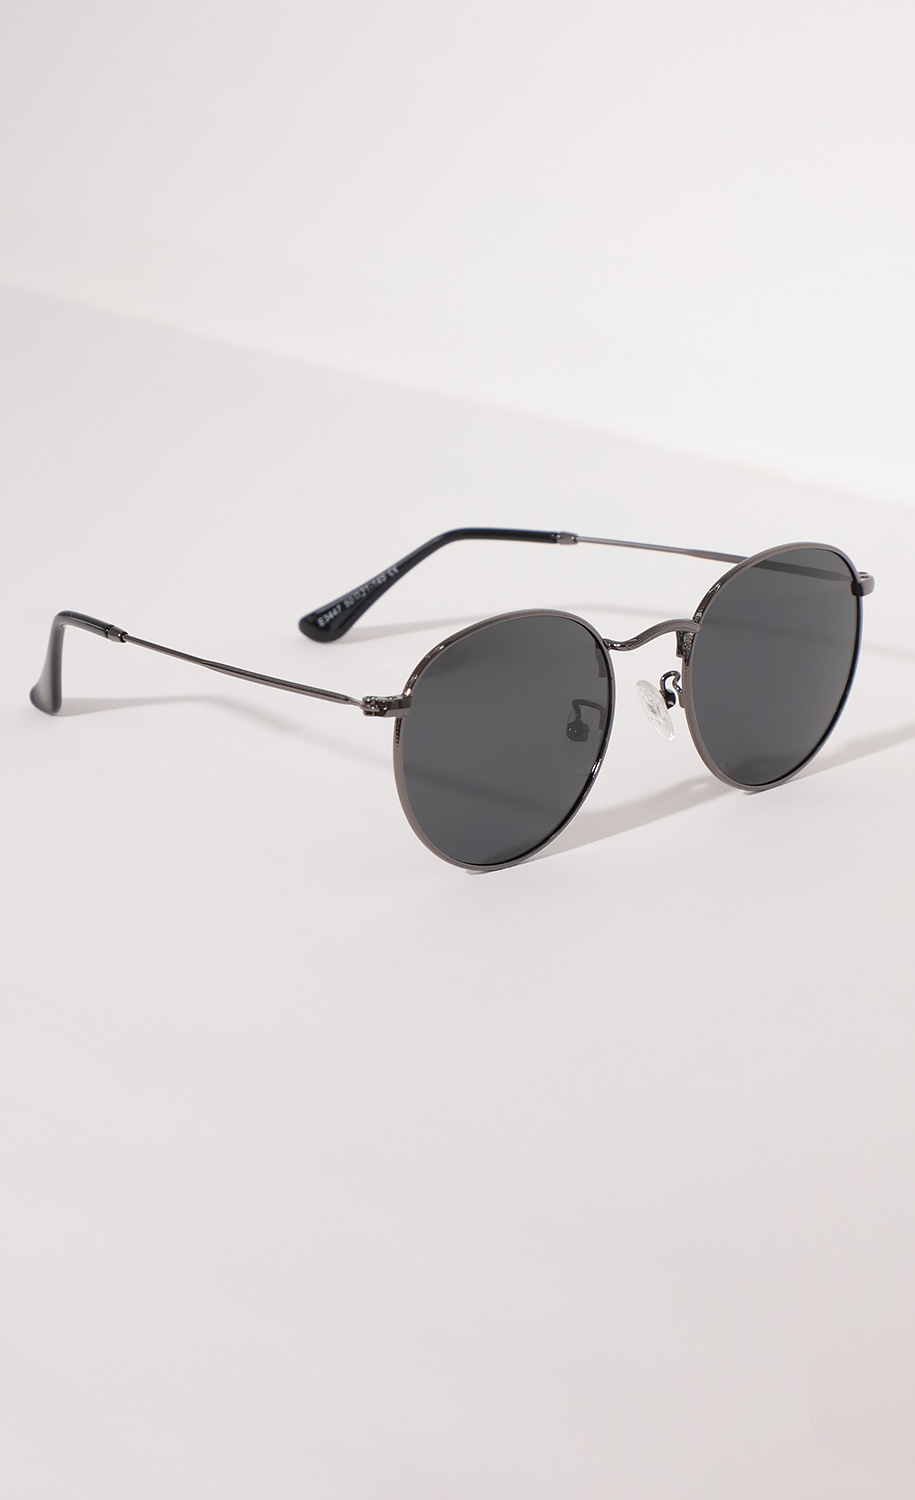 Jessica Round Trim Sunglasses in Black And Silver